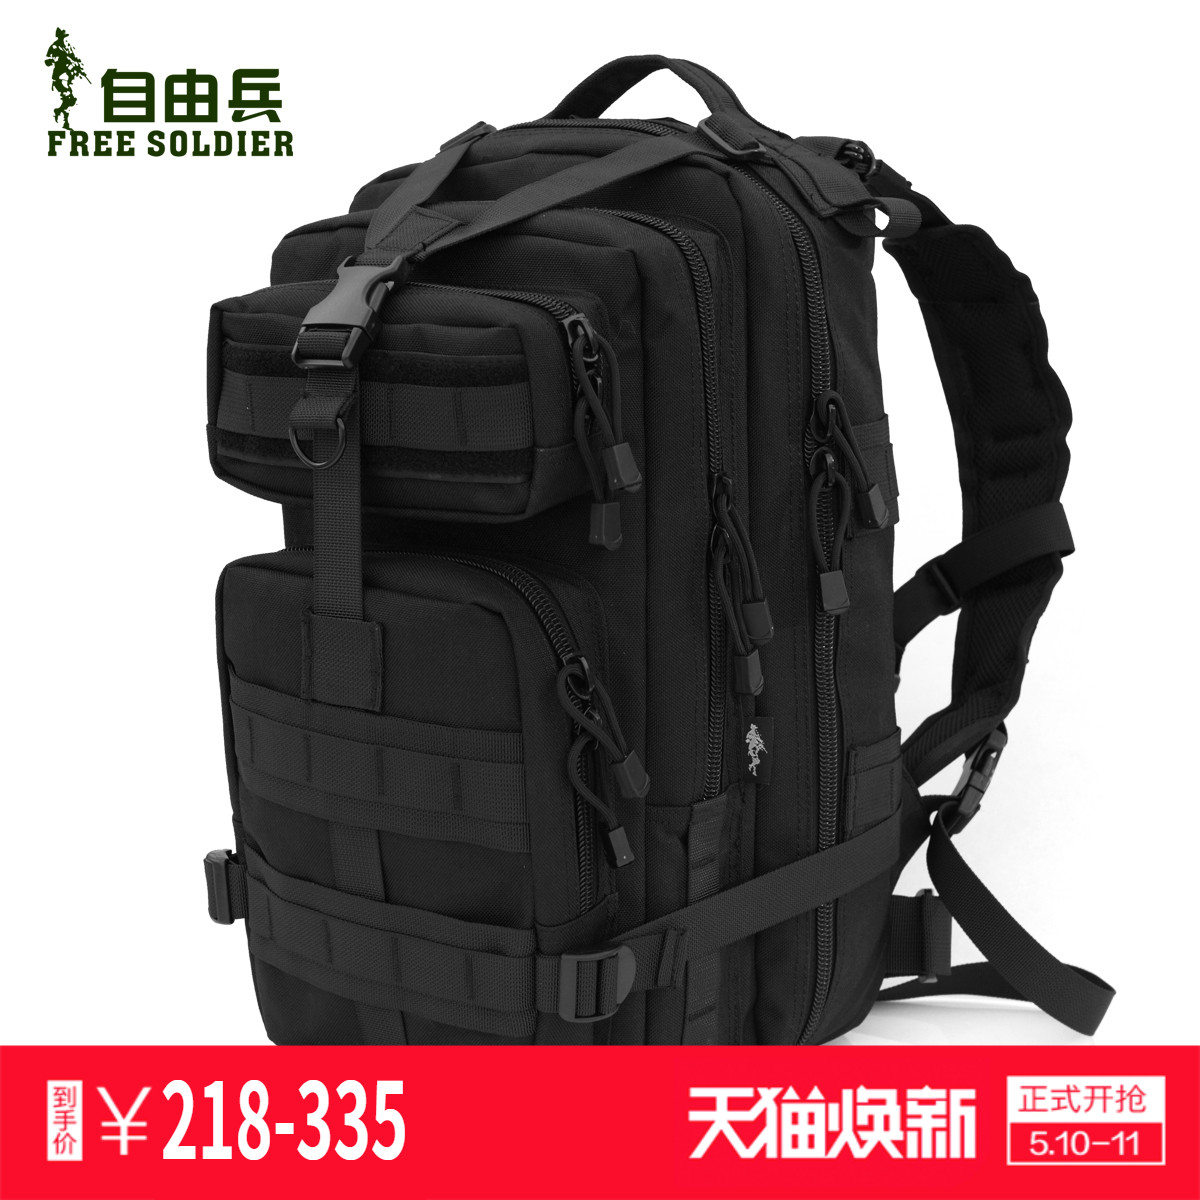 Freelance 3P Attack Tactical Backpack Outdoor Shoulder Backpack Male Waterproof CS Camouflage Mountaineering Bag